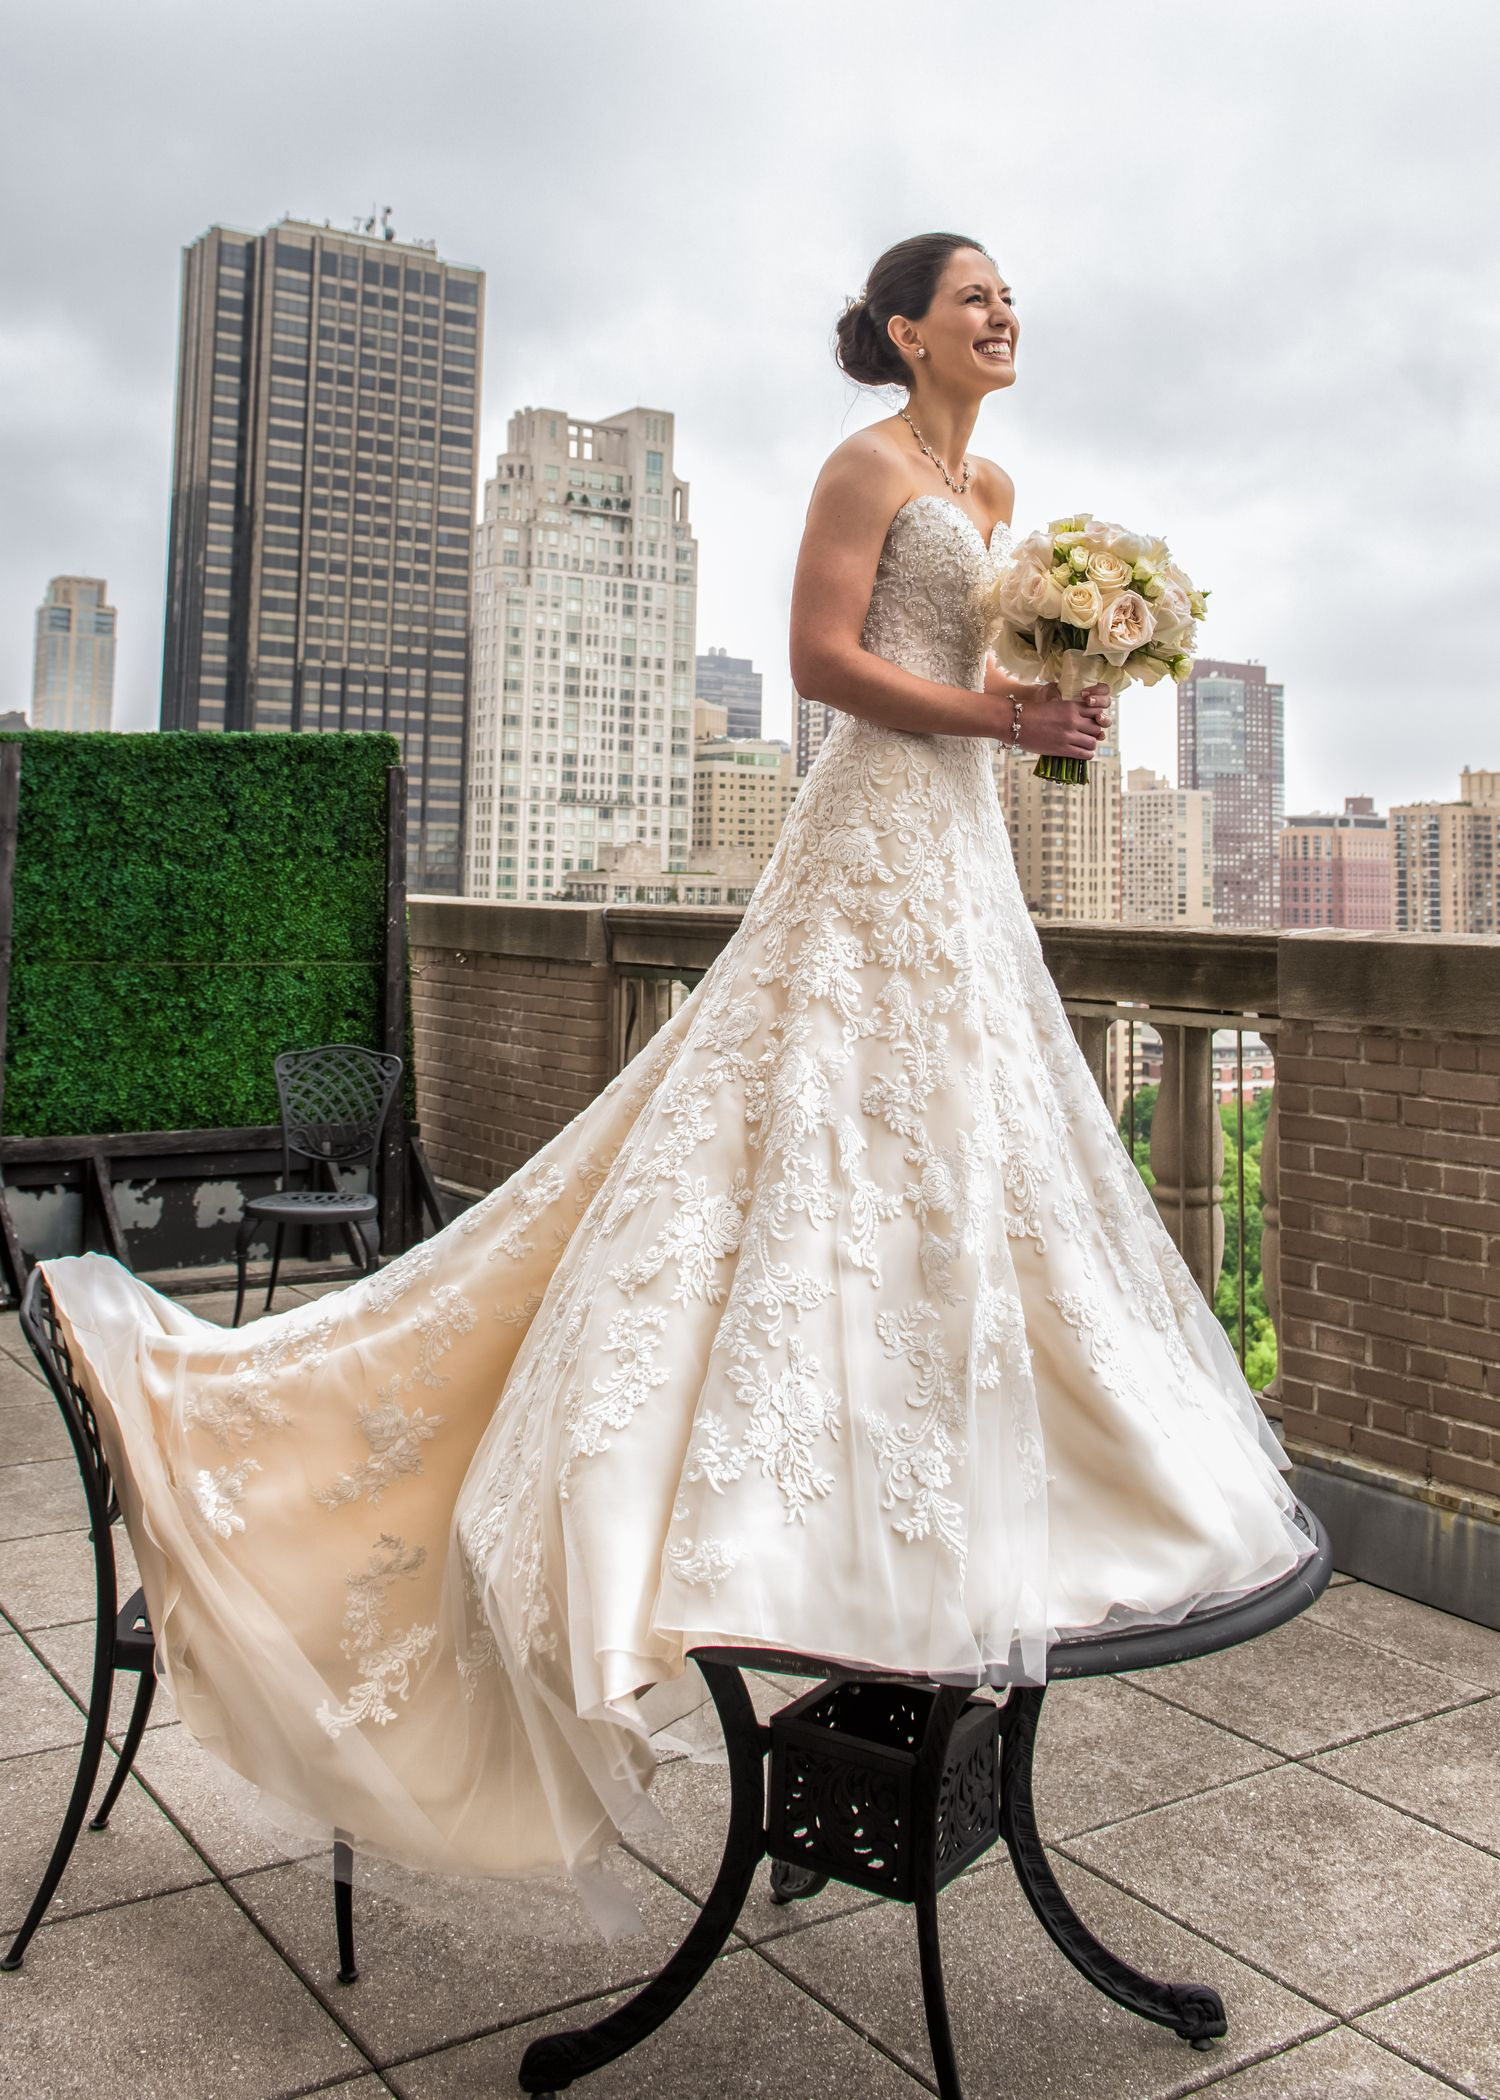 New York Bride On A Rooftop